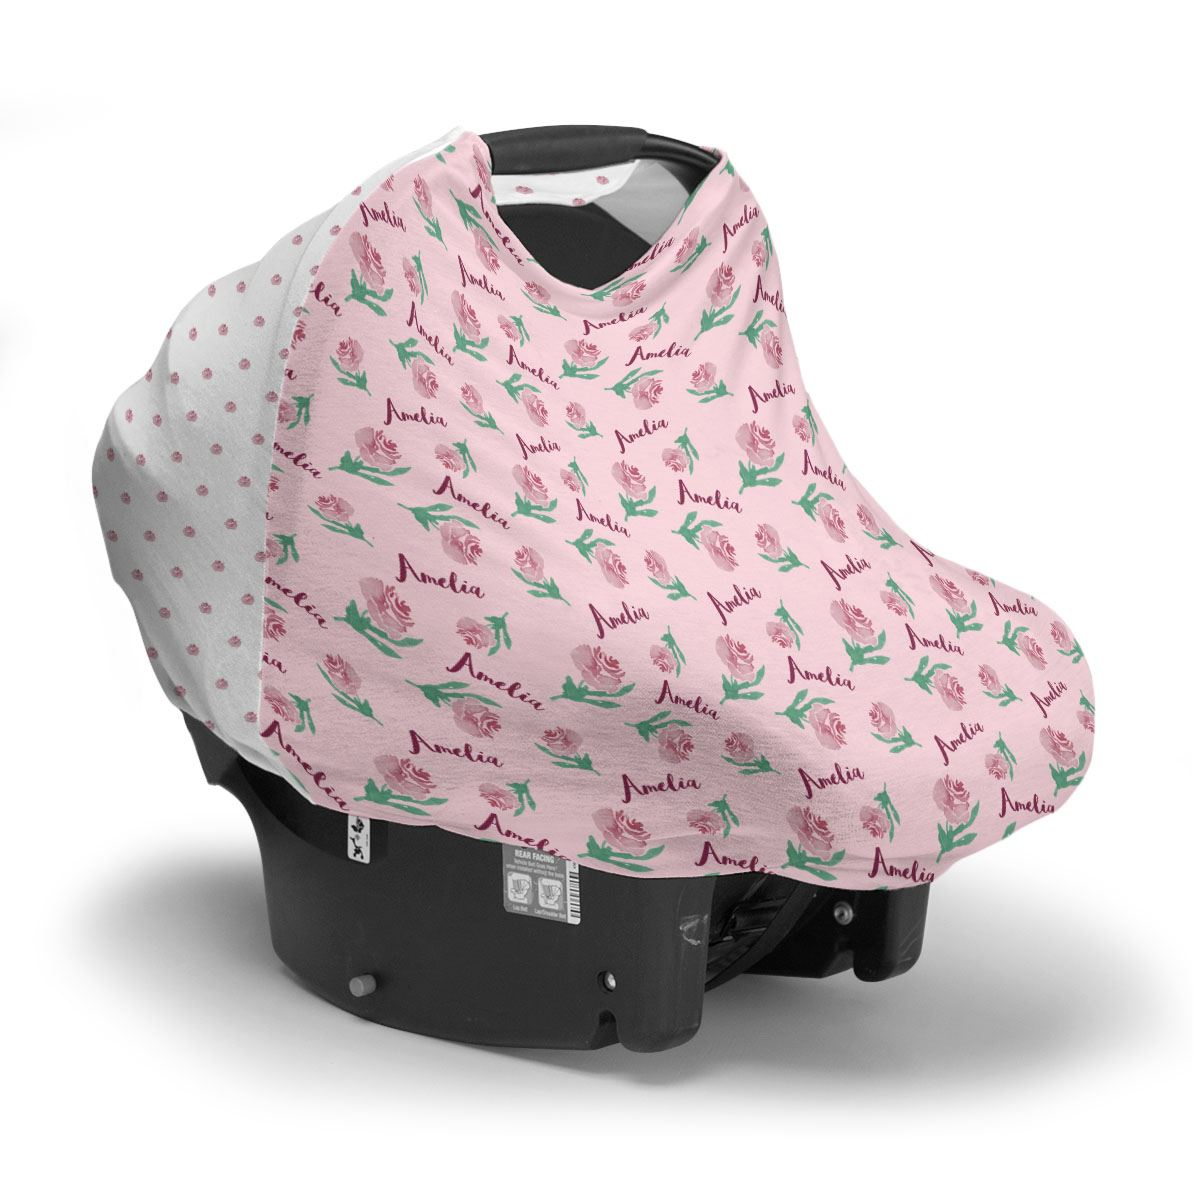 Amelia's Antique Rose | Car Seat Cover (Multi-Use)